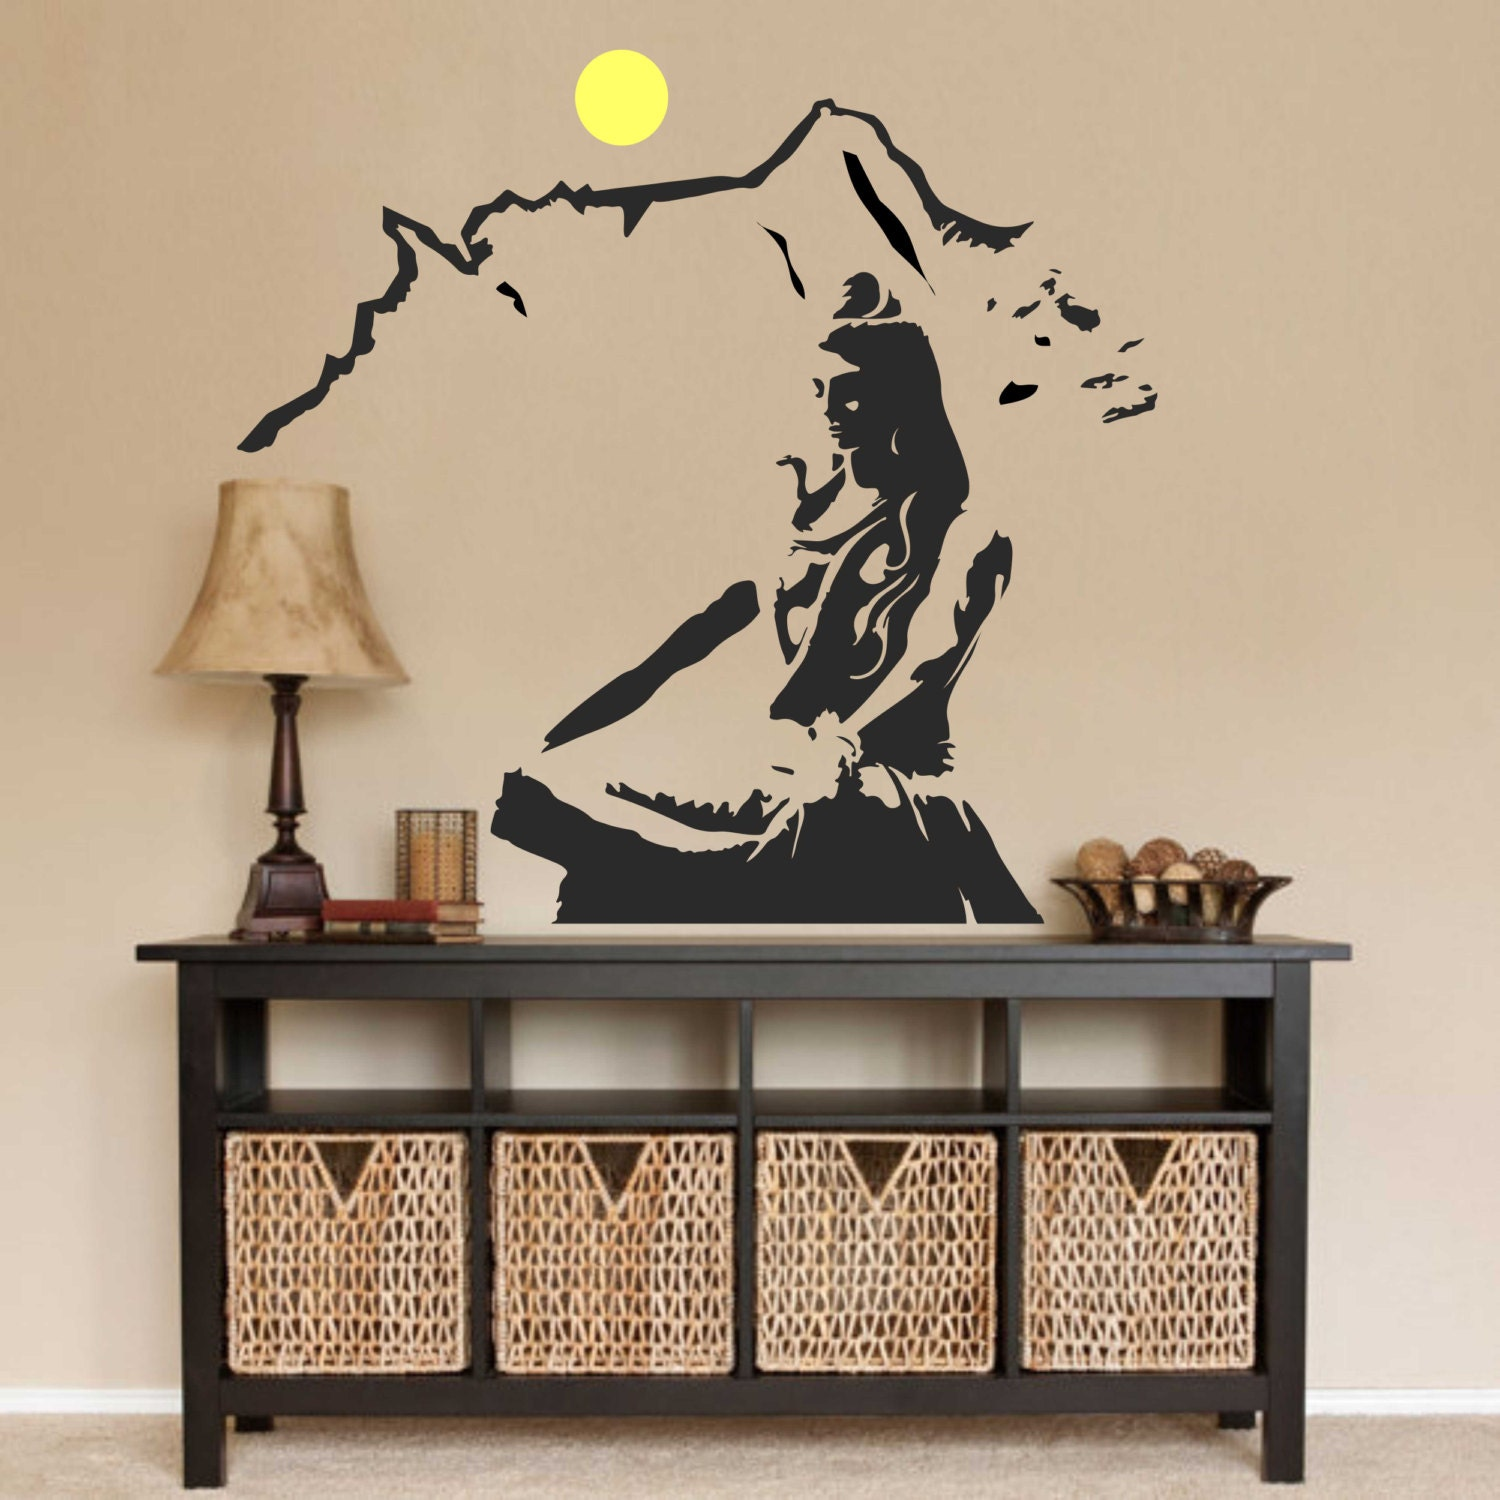 Lord shiva wall decal hindu prayer decals car decals for Decorative mural